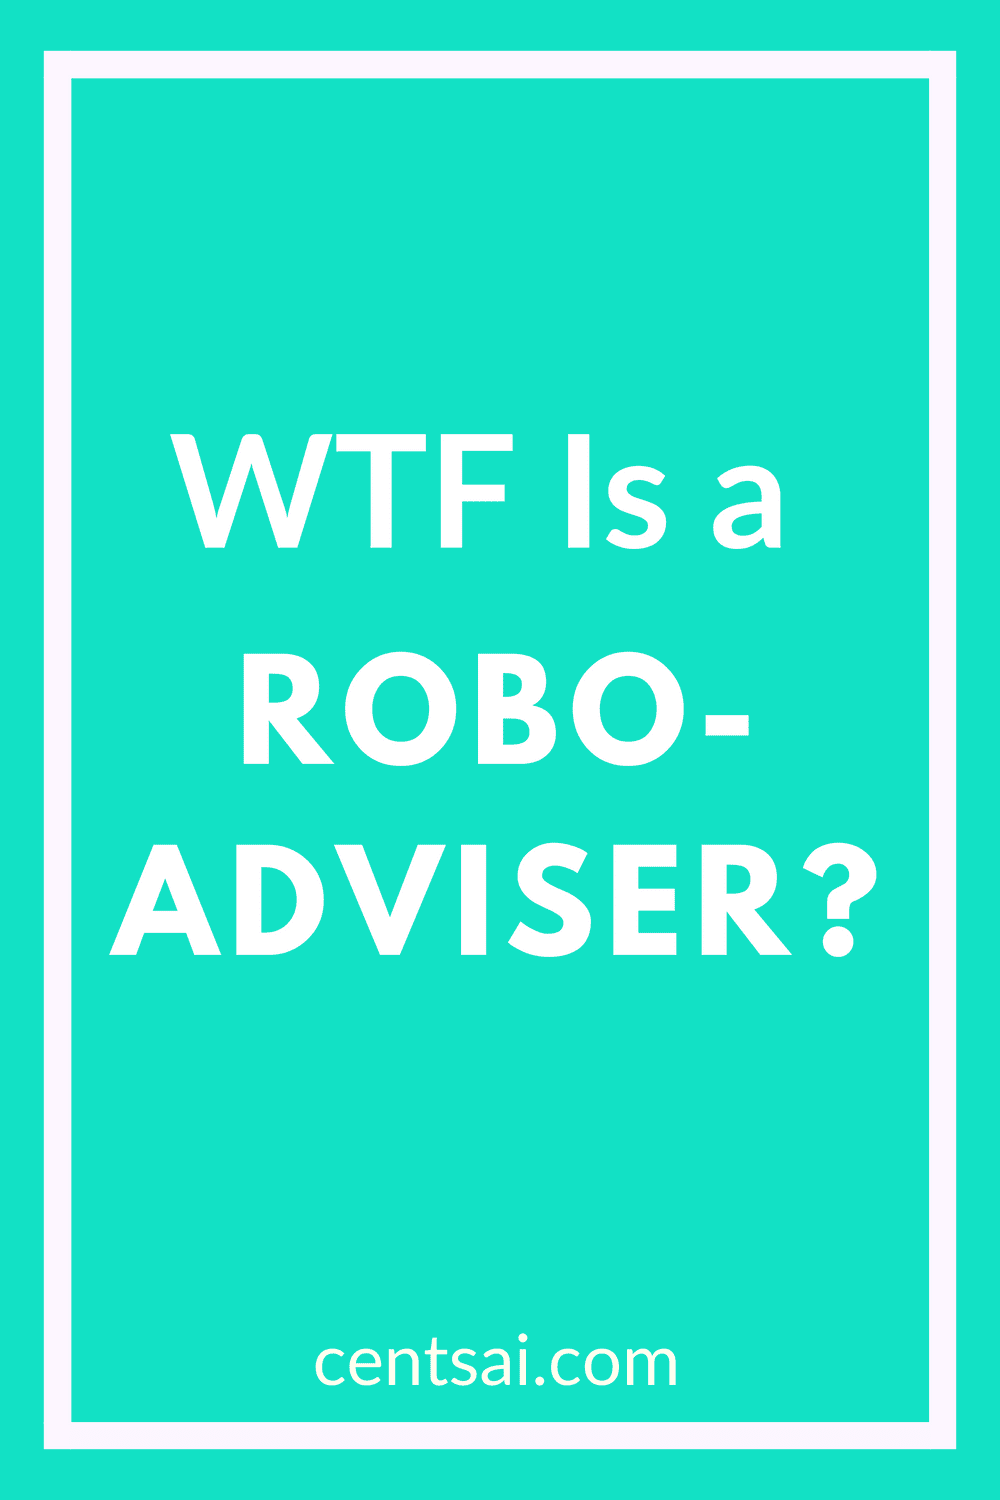 WTF Is a Robo-Adviser? Can robots fix your money woes? Well, maybe they can't fix everything, but they can help out. Get the lowdown on what robo-advisers are and how they work. #roboadviser #roboadvisorinvesting